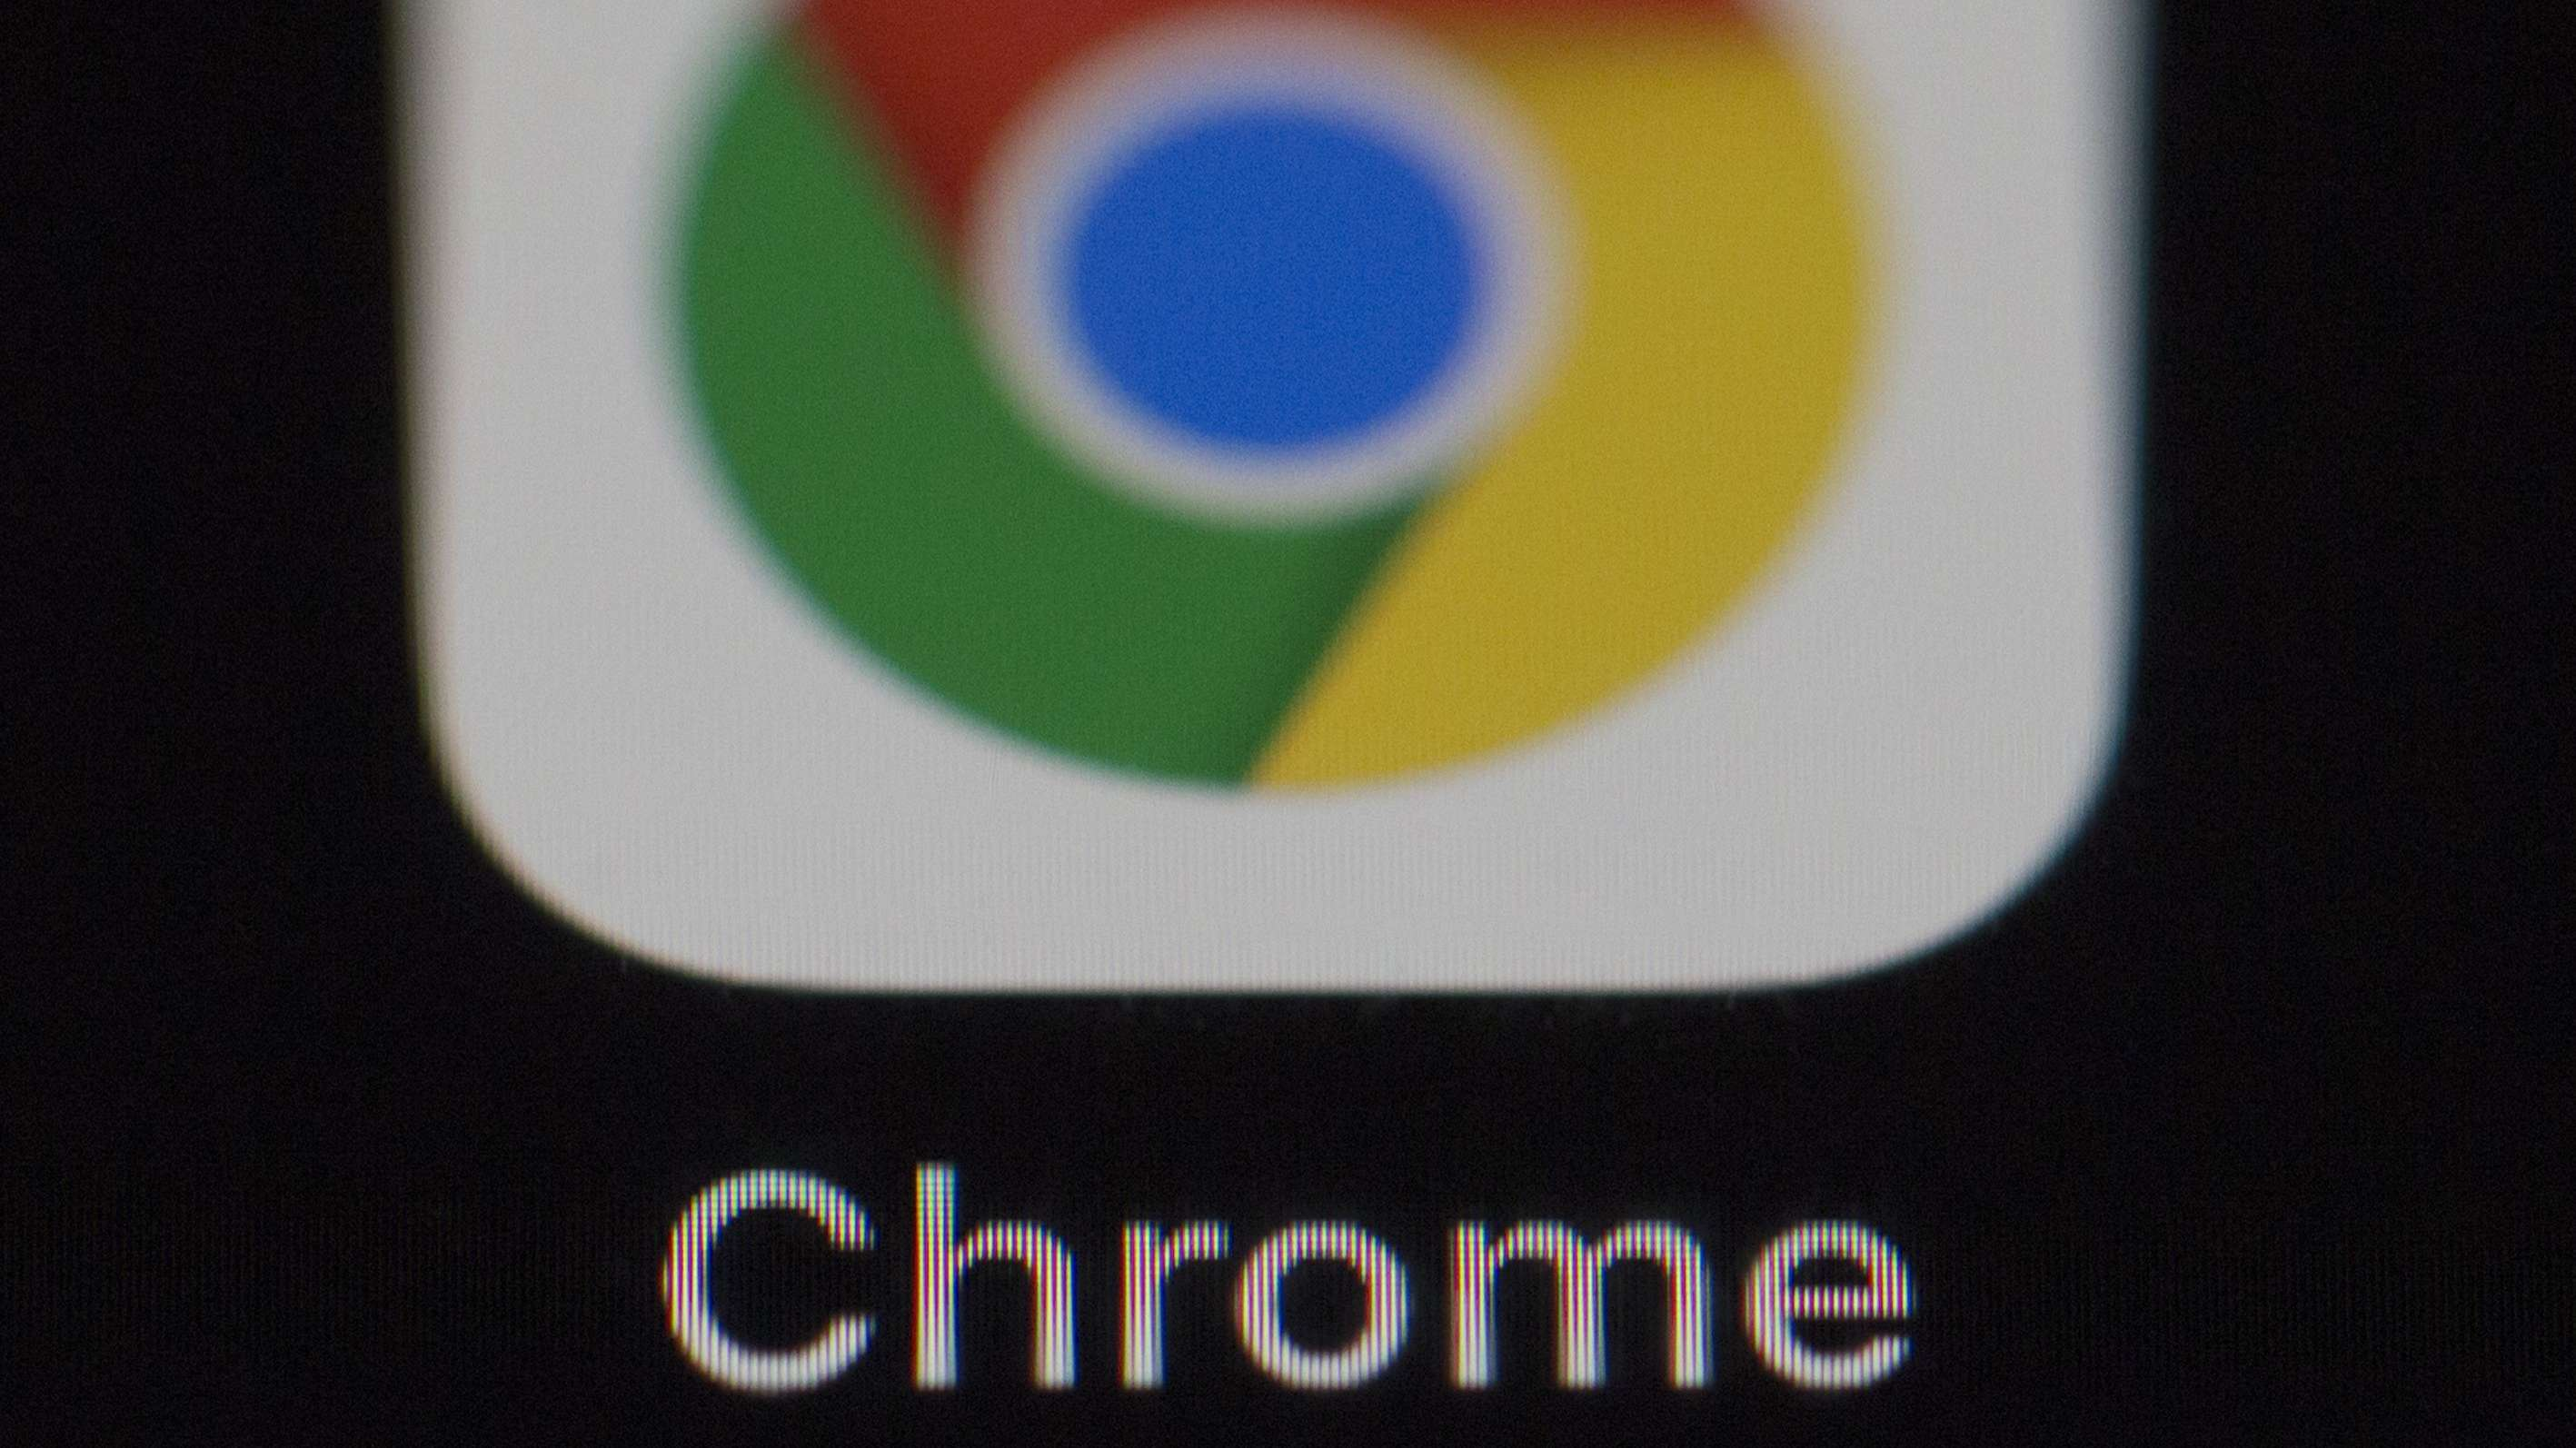 Google's Chrome